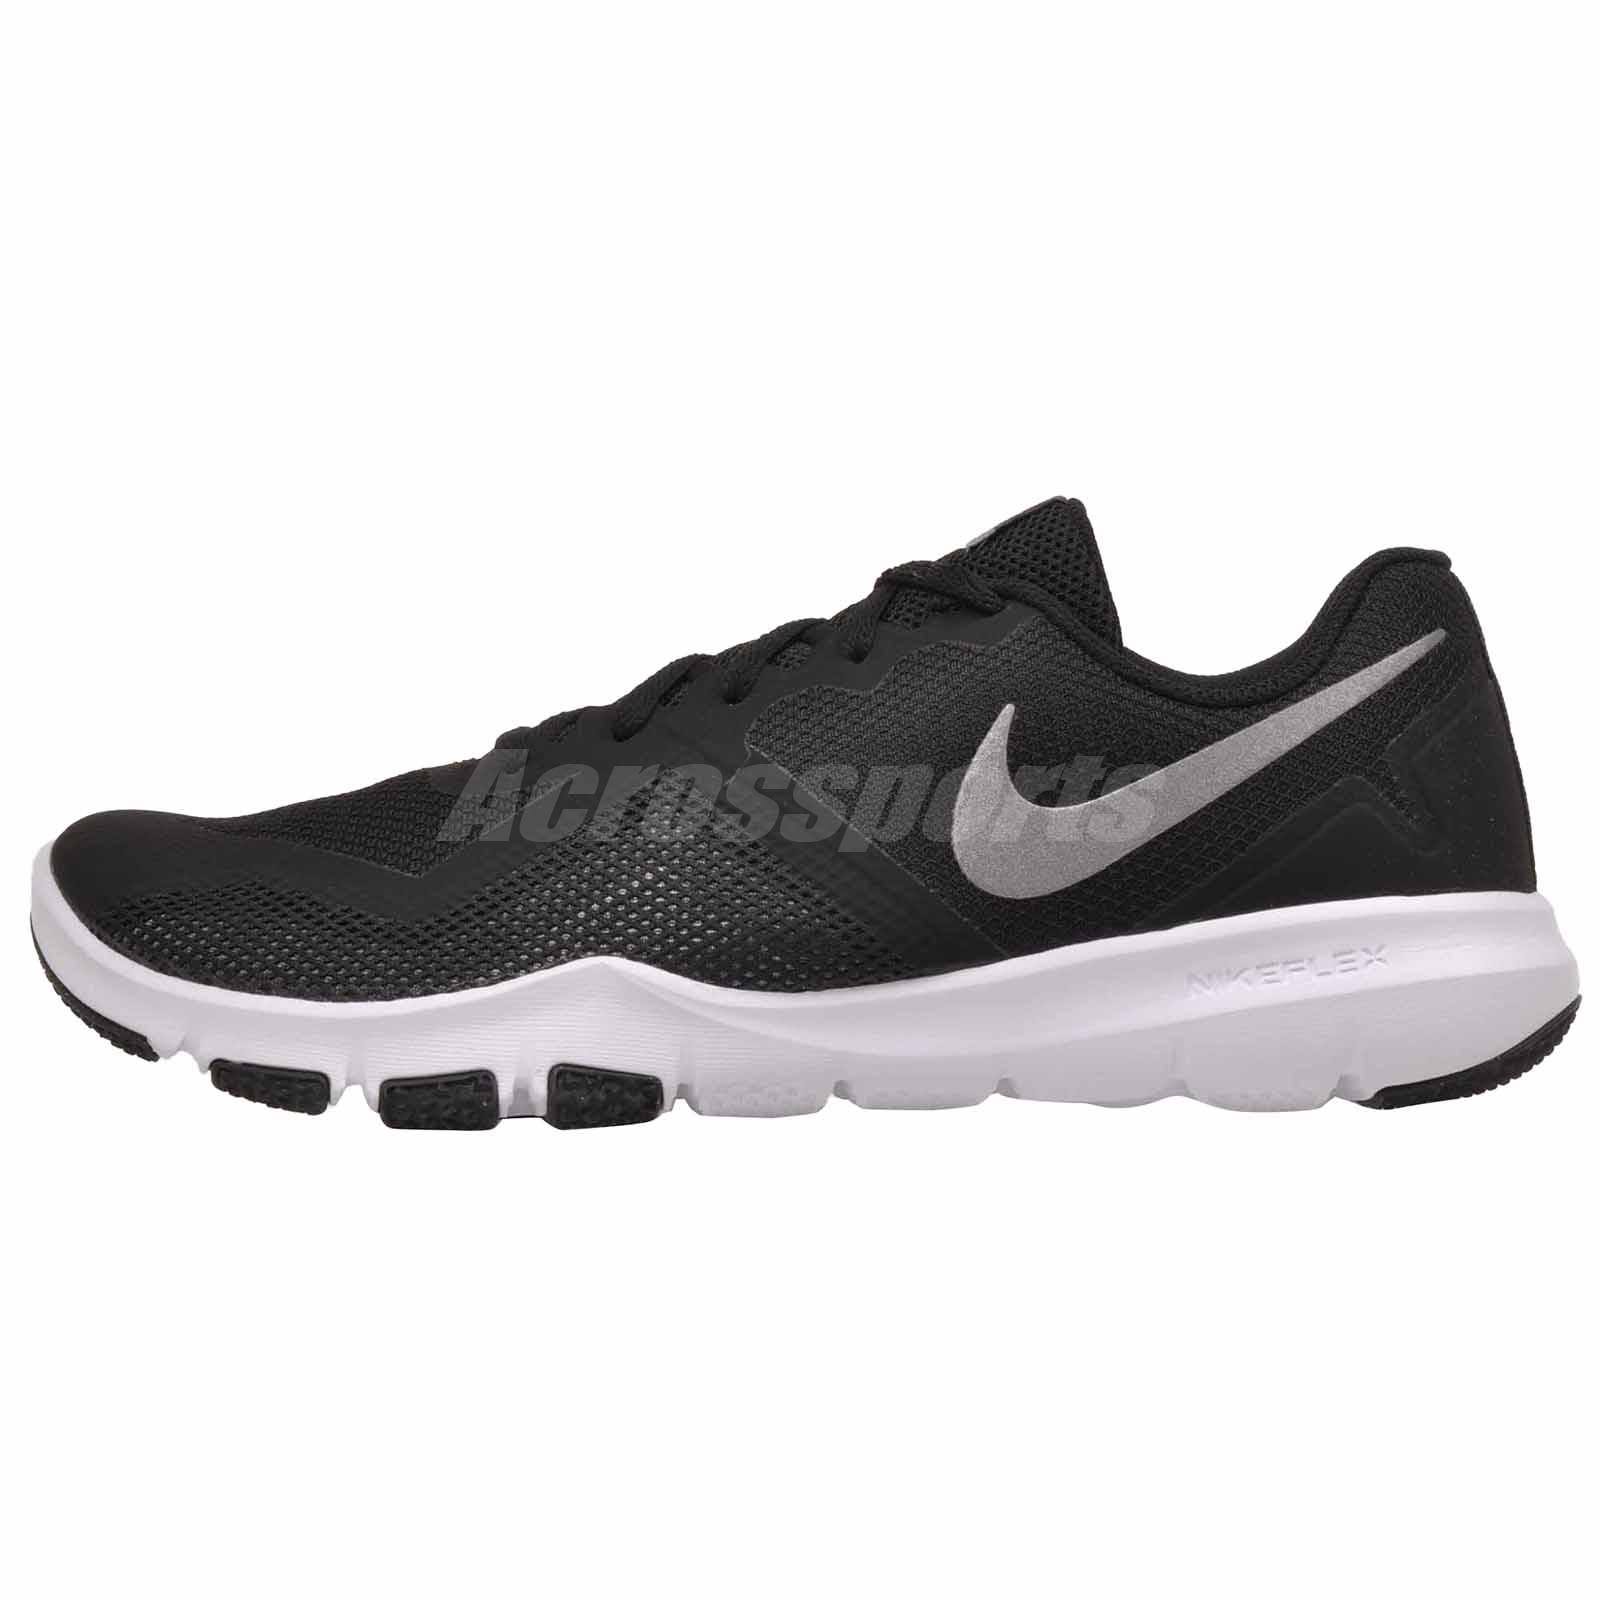 617a152aa609 Nike Flex Control II 4E Cross Training Mens Wide Shoes Black Grey AQ9712-010